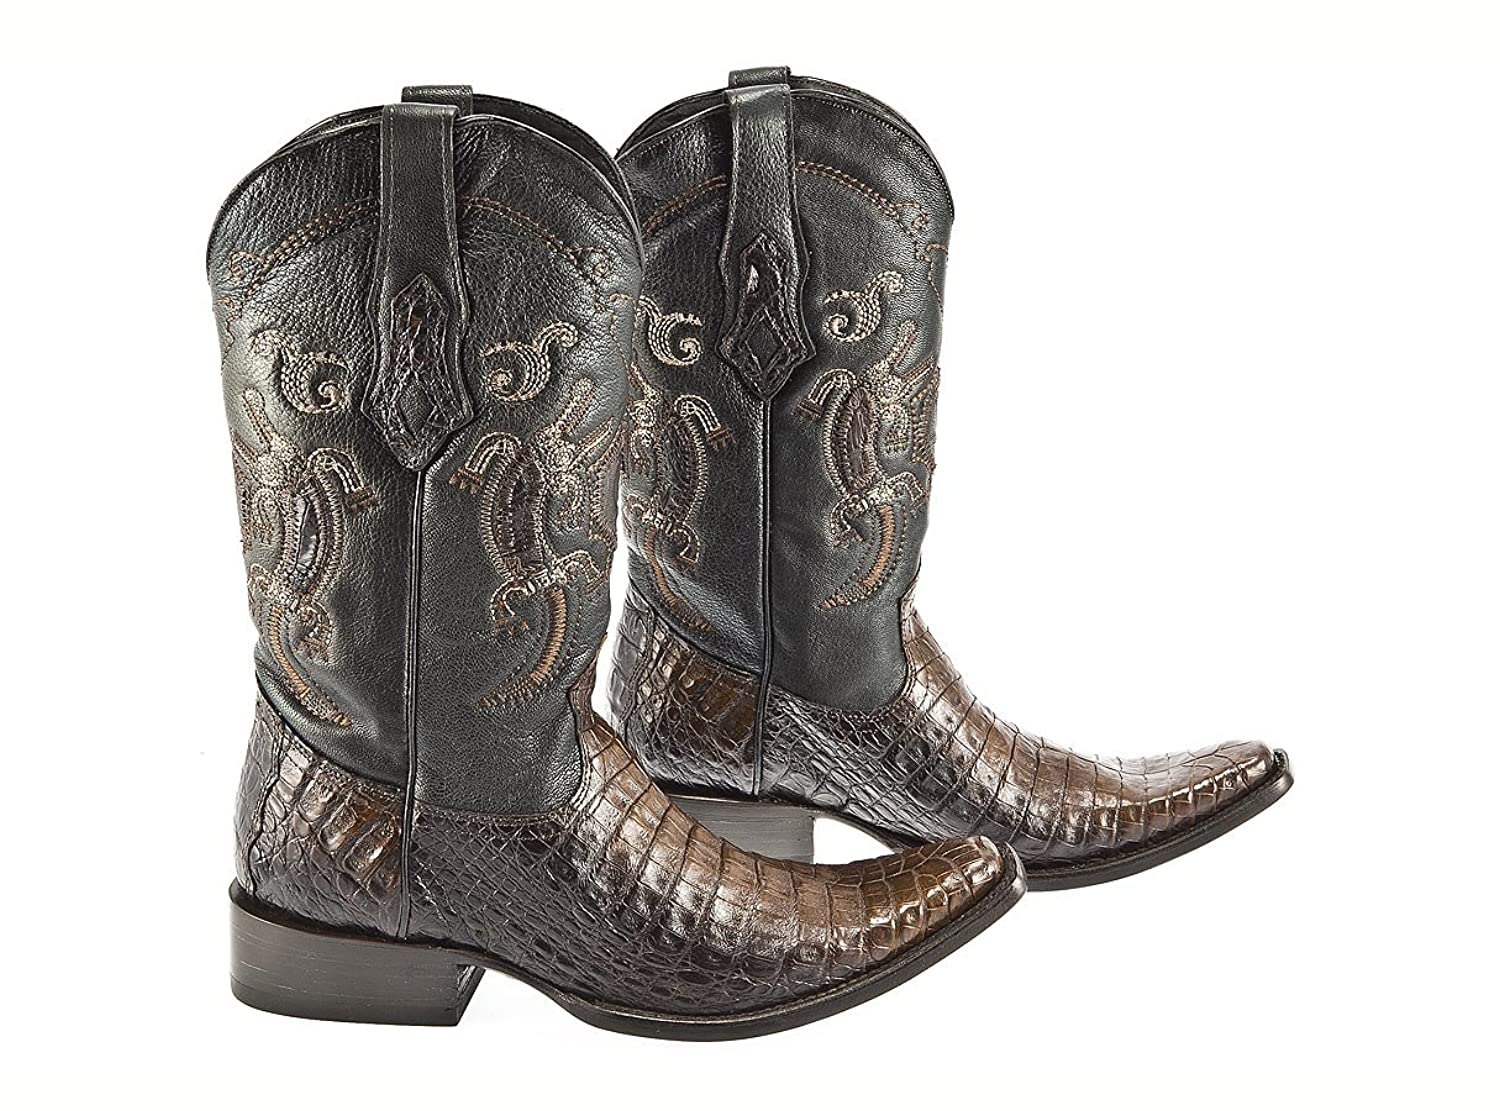 Cowboy Mens Boots By Cuadra - Extasis Color - Alligator Leather - Handmade - Sizes From 7.5 to 11